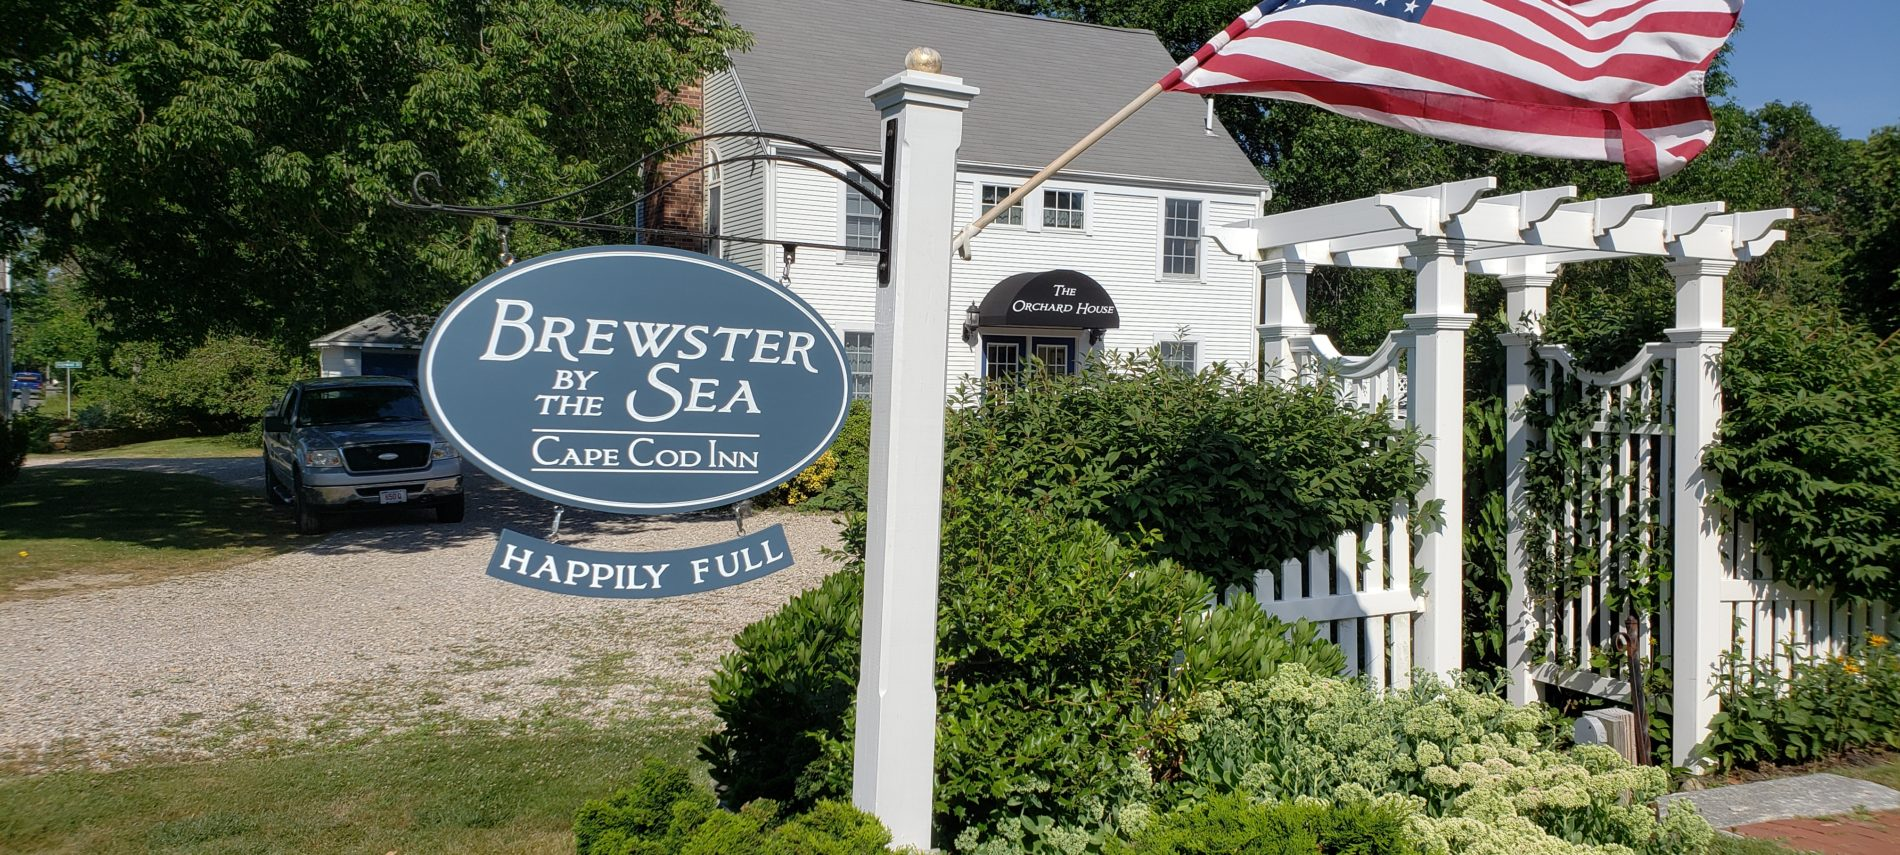 Outdoor sign at Brewster By The Sea Inn next to bushes with an American flag flapping in the wind